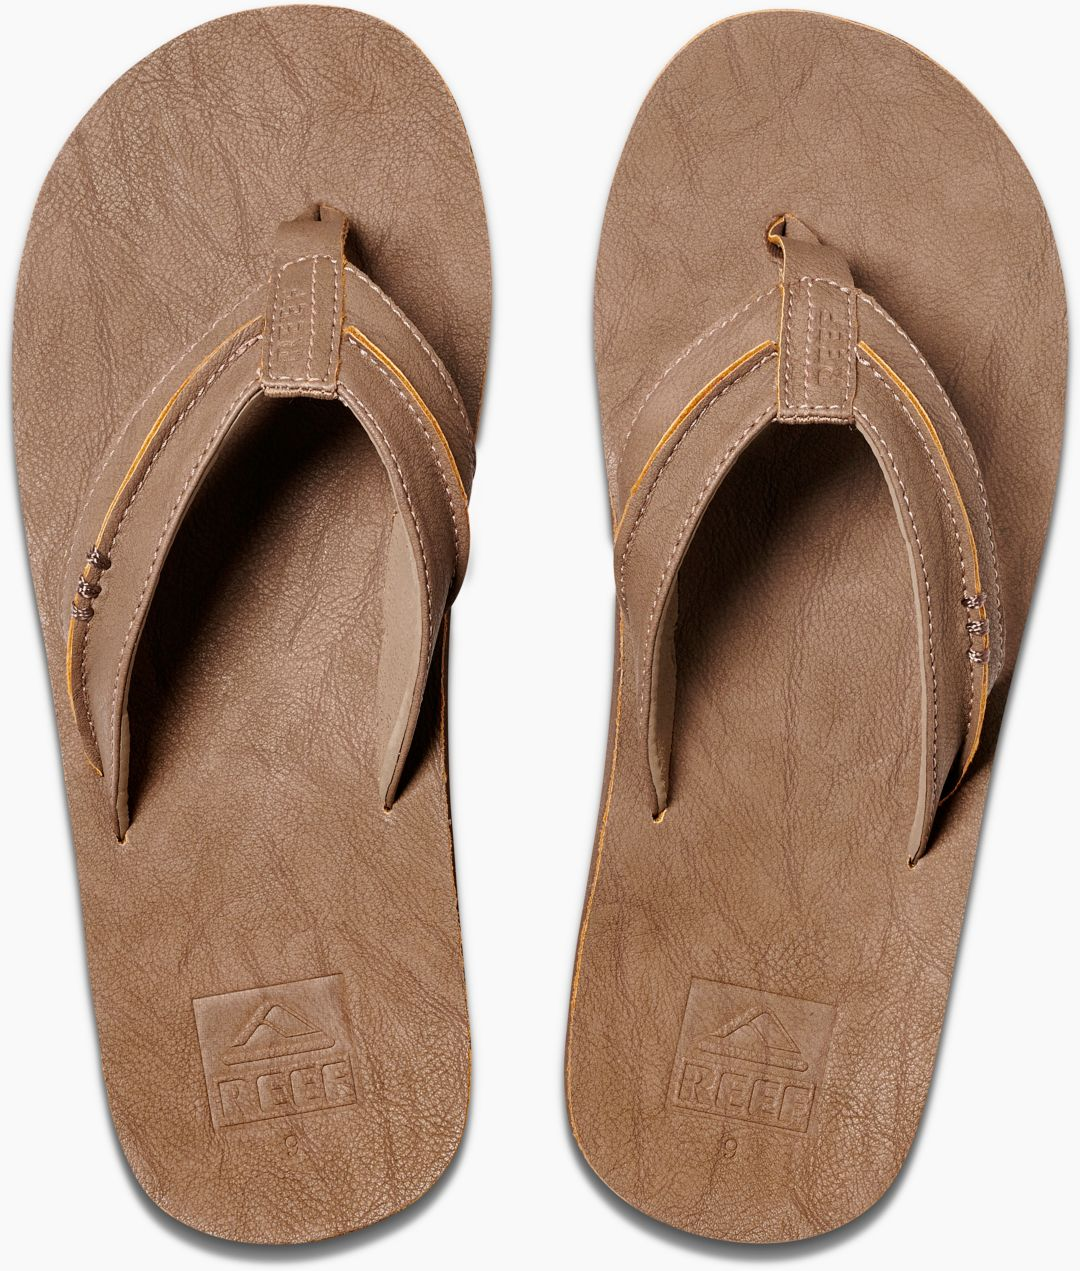 6d2f5a307c6a3 Reef Men's Marbea Synthetic Leather Sandals | DICK'S Sporting Goods